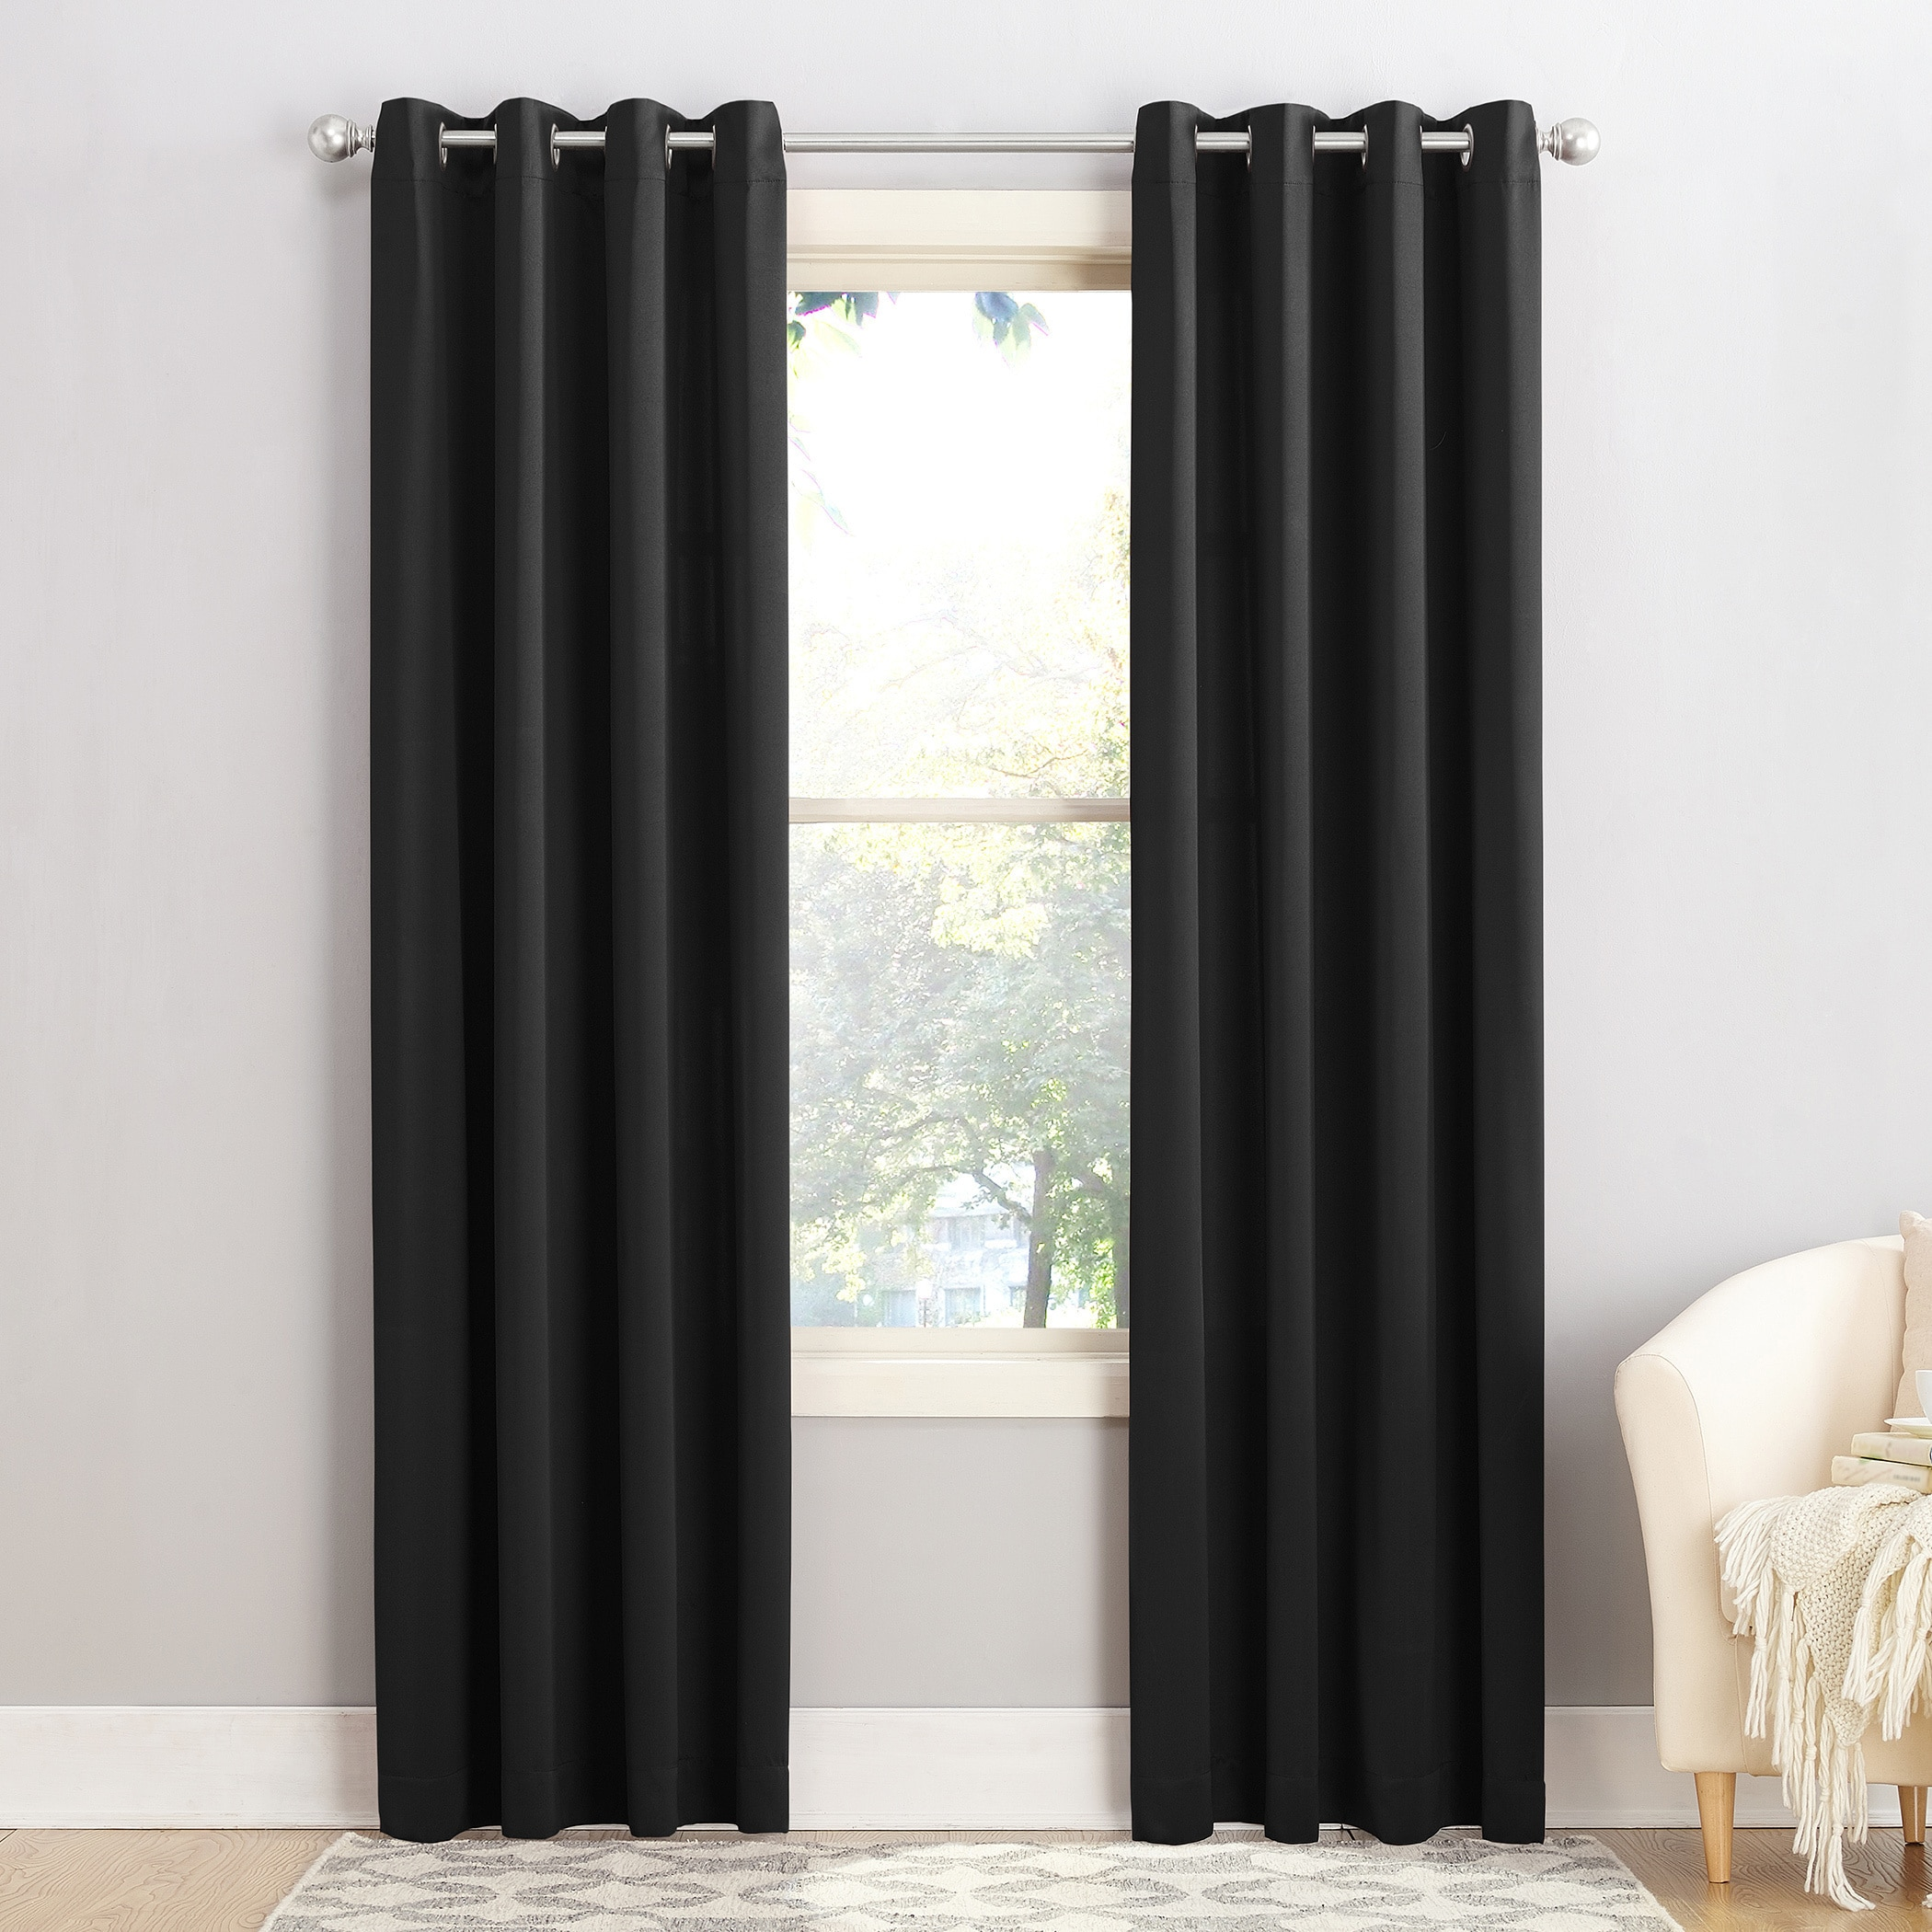 pair drapes with garden darma panel curtain free ati sheer product pocket home rod overstock linen